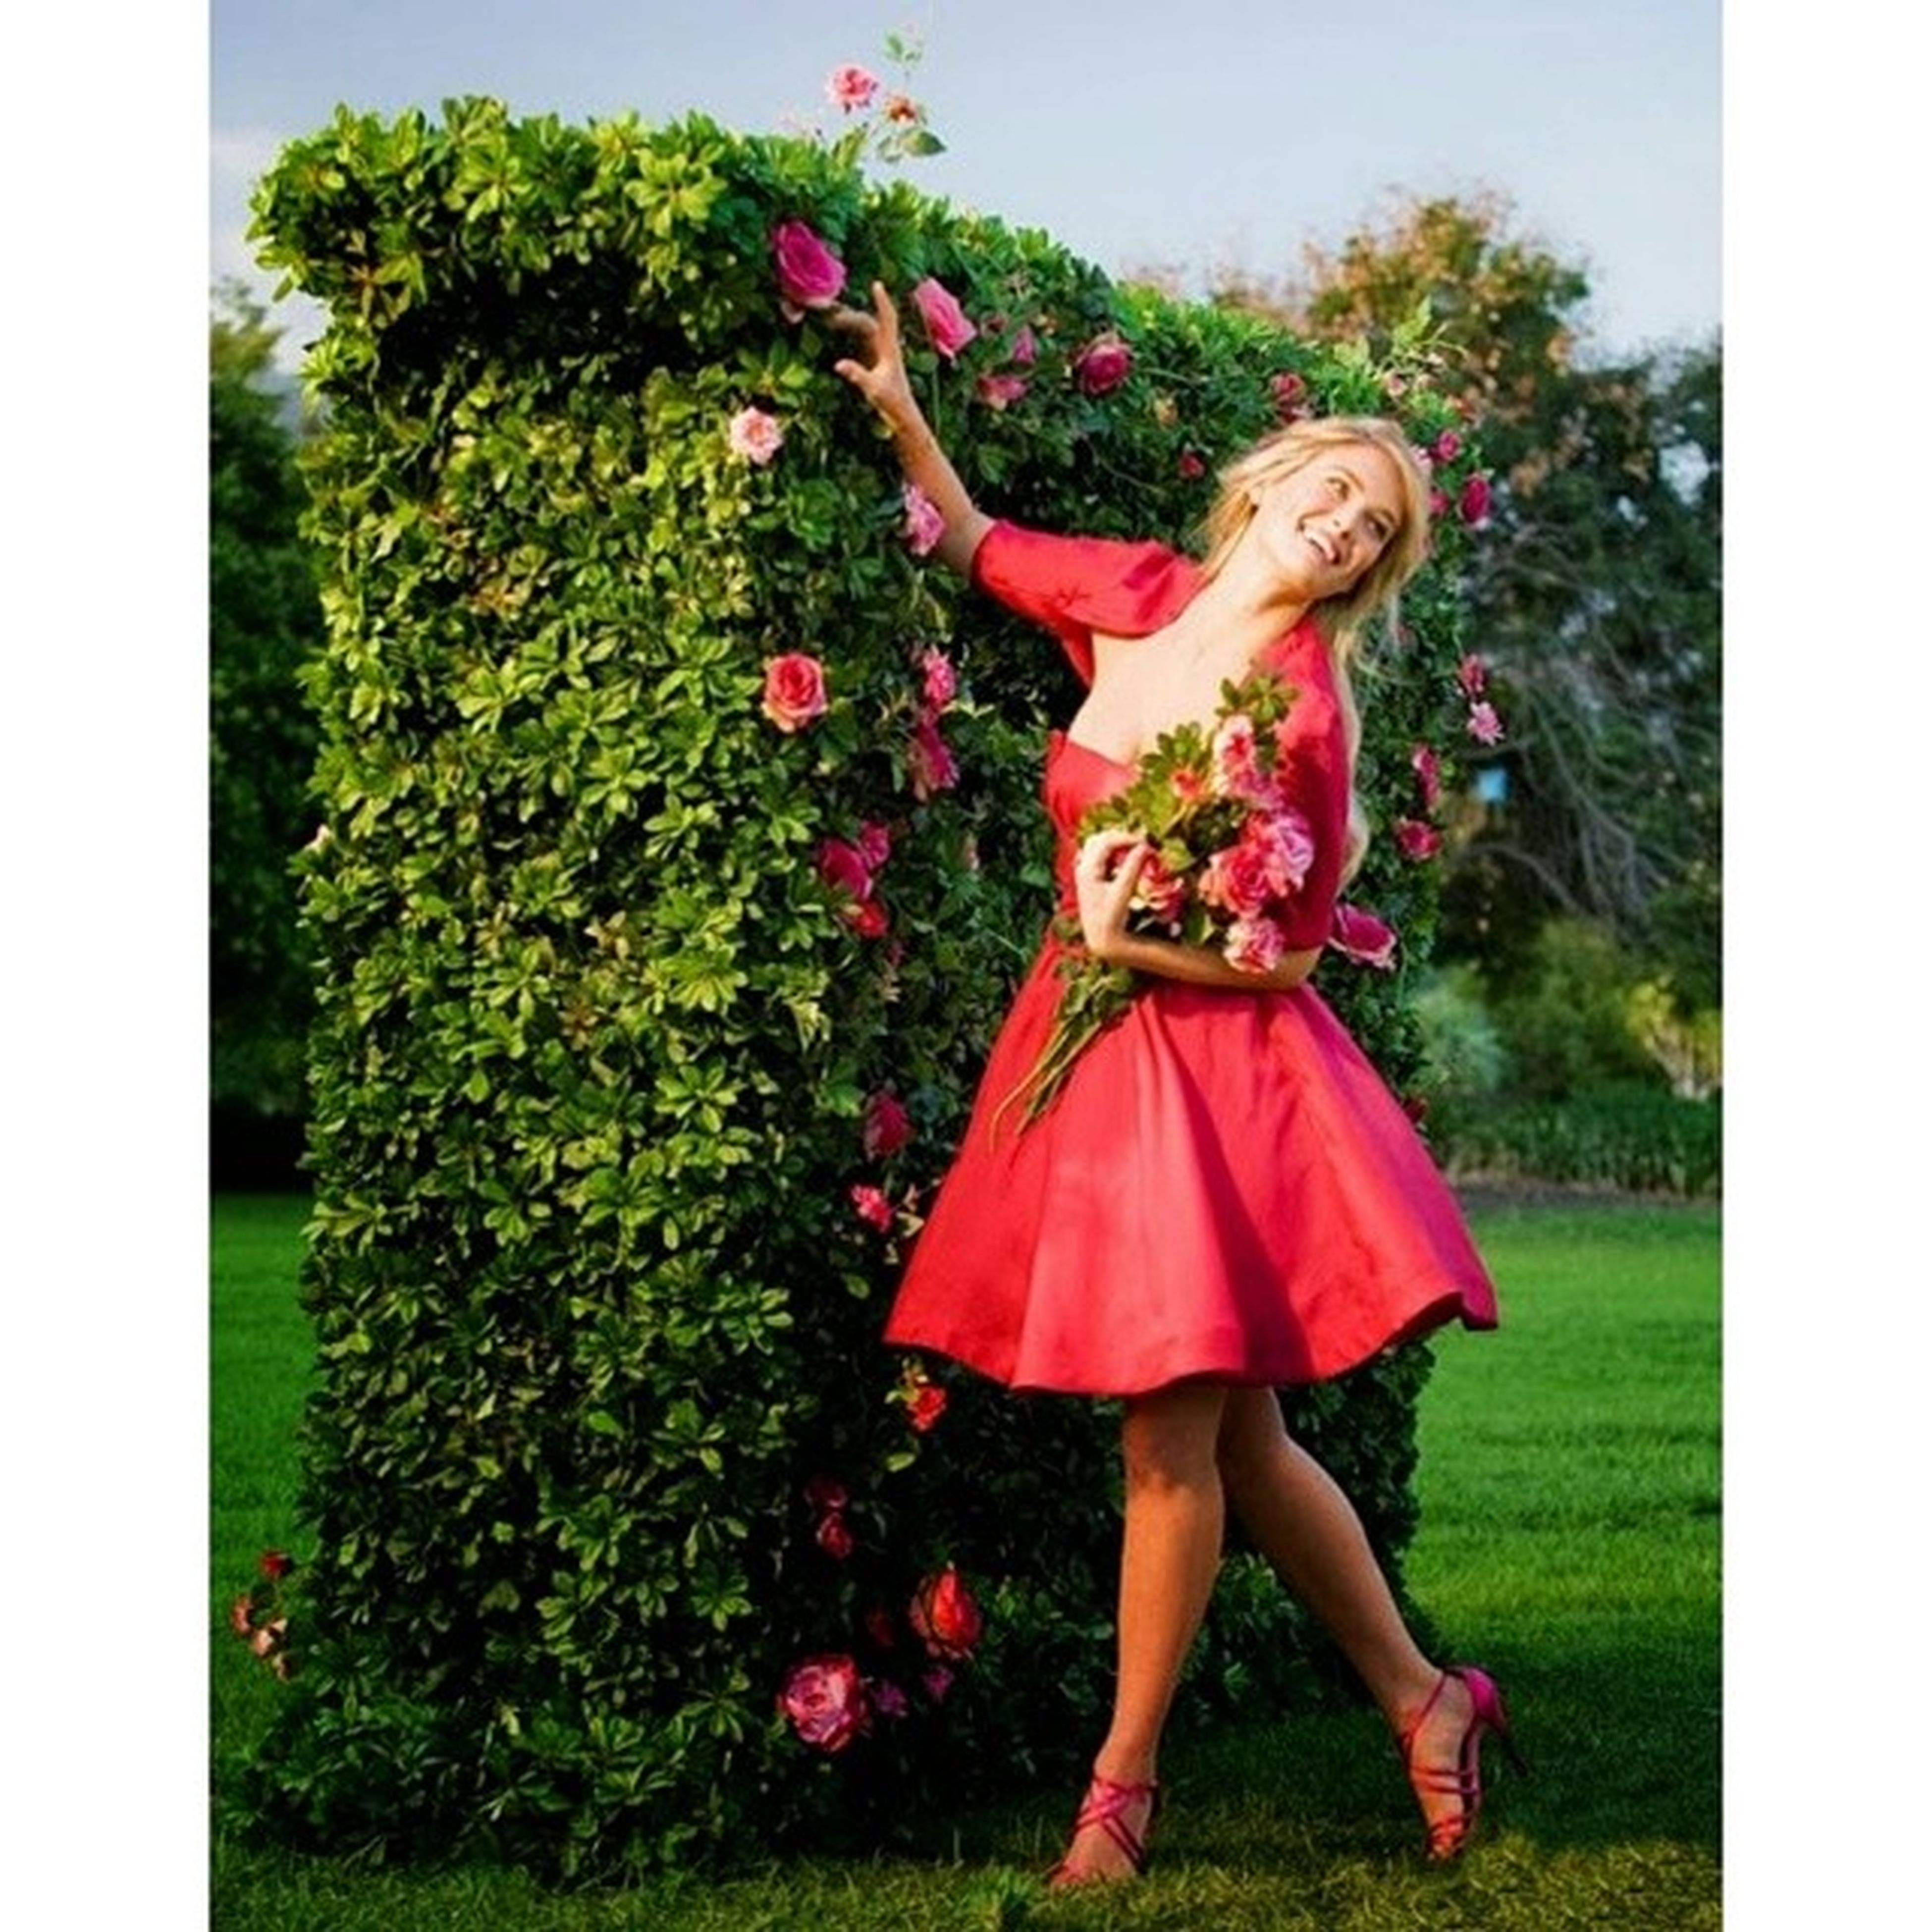 transfer print, auto post production filter, full length, leisure activity, grass, lifestyles, flower, park - man made space, dress, young adult, young women, casual clothing, tree, person, standing, childhood, field, girls